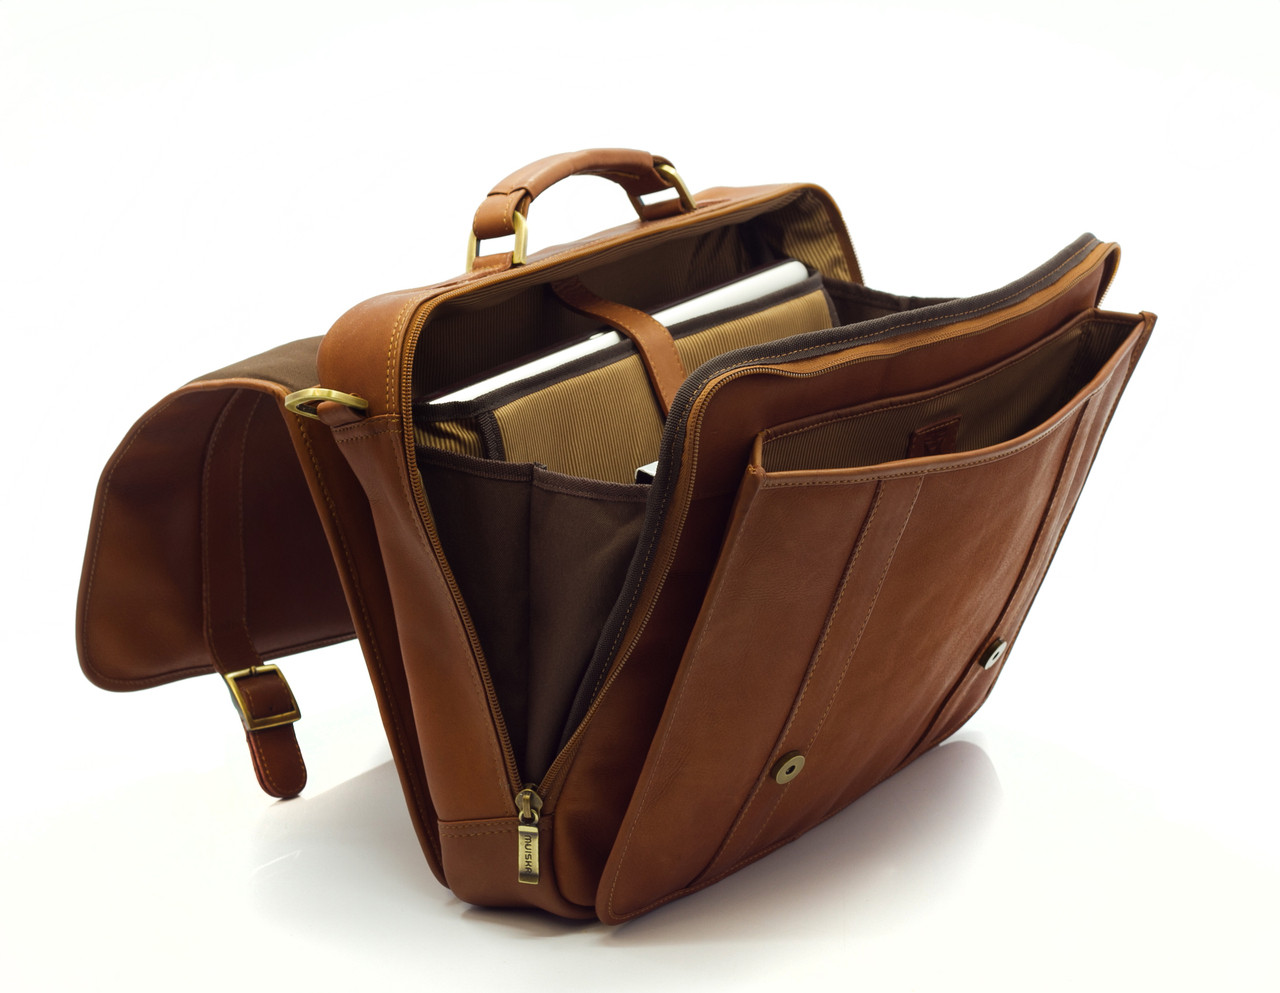 Muiska - Lucas - Colombian Leather Laptop Brief - ample storage space for files, documents and all your workday essentials